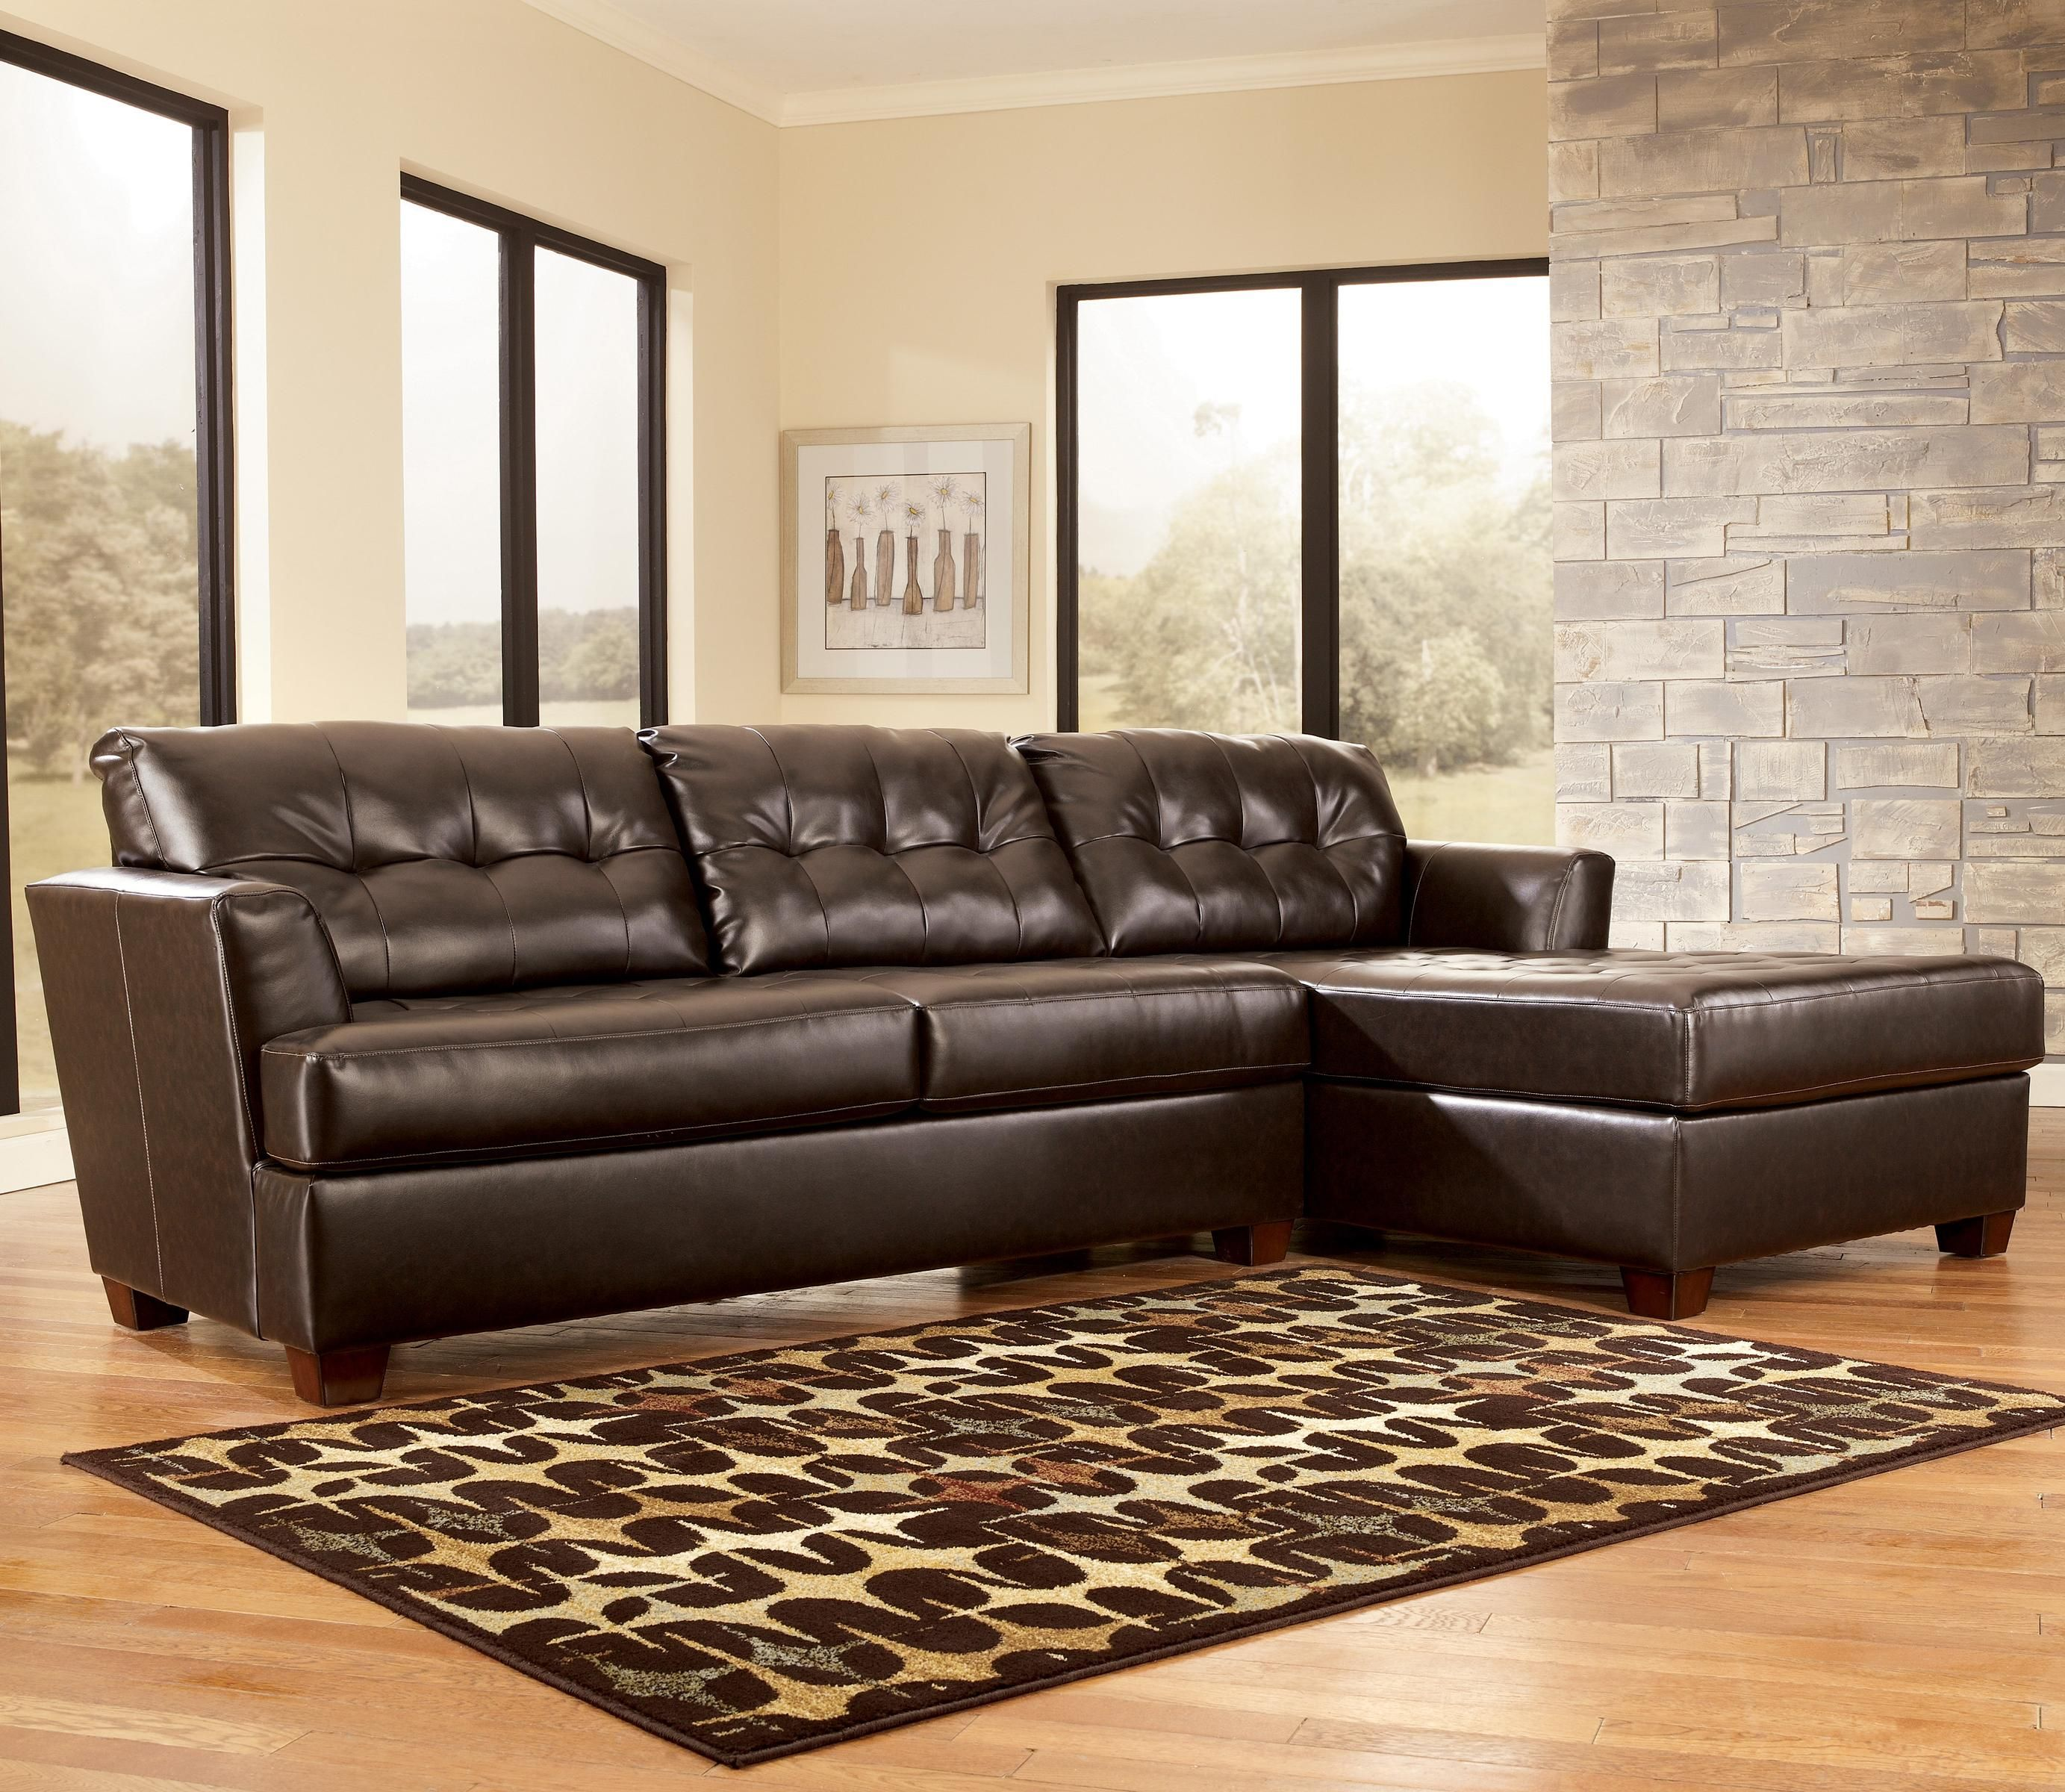 Superb Dixon Durablend Chocolate Sectional Sofa By Signature Download Free Architecture Designs Scobabritishbridgeorg